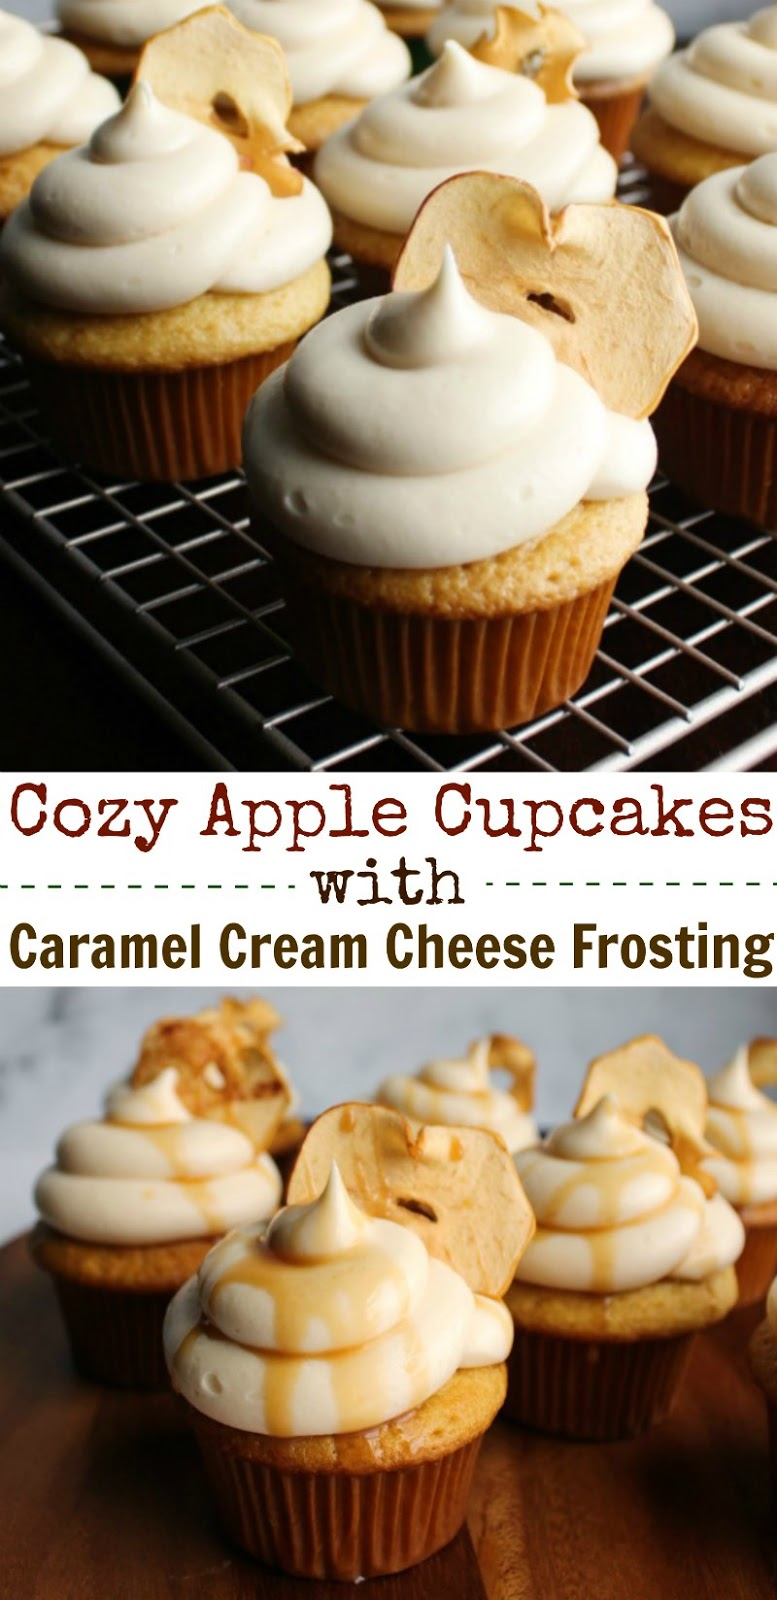 Lightly spiced cupcakes kissed with green apple syrup and topped with easy caramel cream cheese frosting are as pretty as they are tasty. Garnish with an apple chip and drizzle of caramel sauce for extra fall flare.